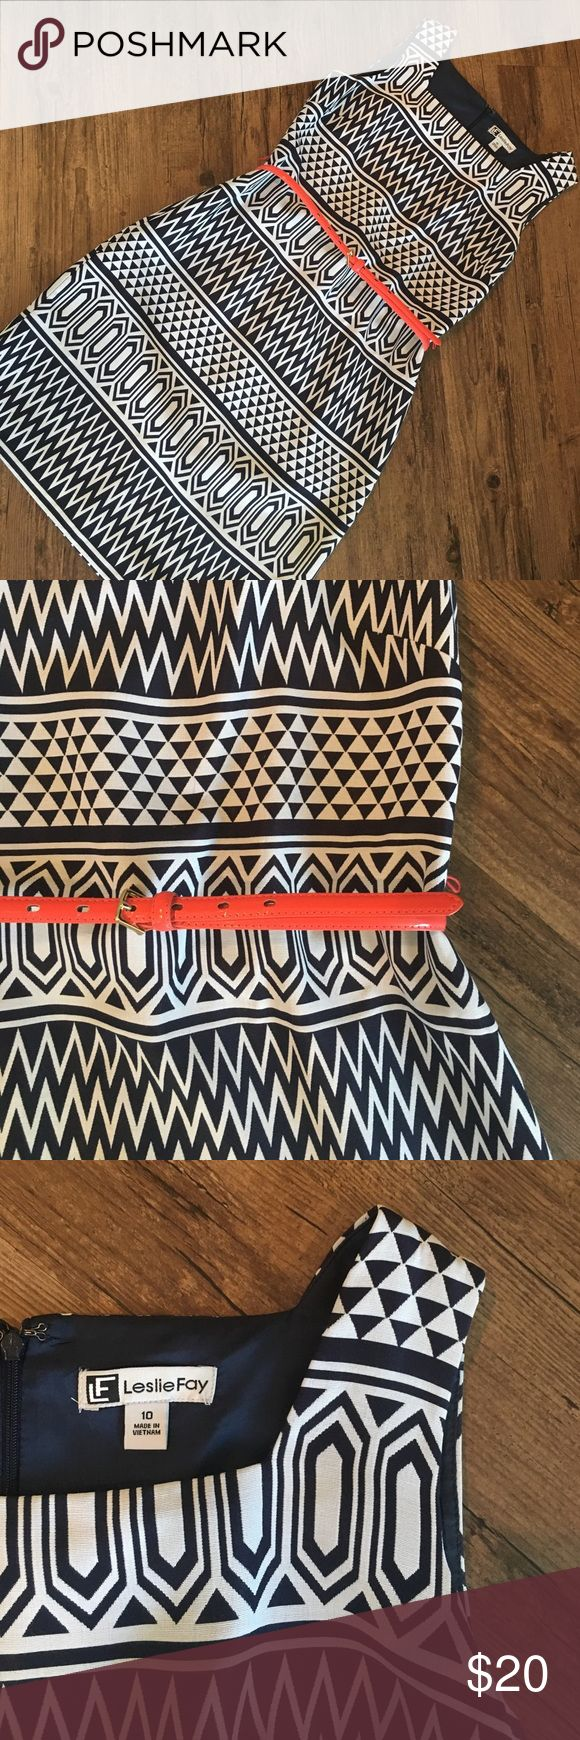 Chevron Print Dress This navy and white dress is so flattering on! Comes with neon coral belt, and there are string loops to keep belt in place. This dress has been loved 💕 Leslie Fay Dresses